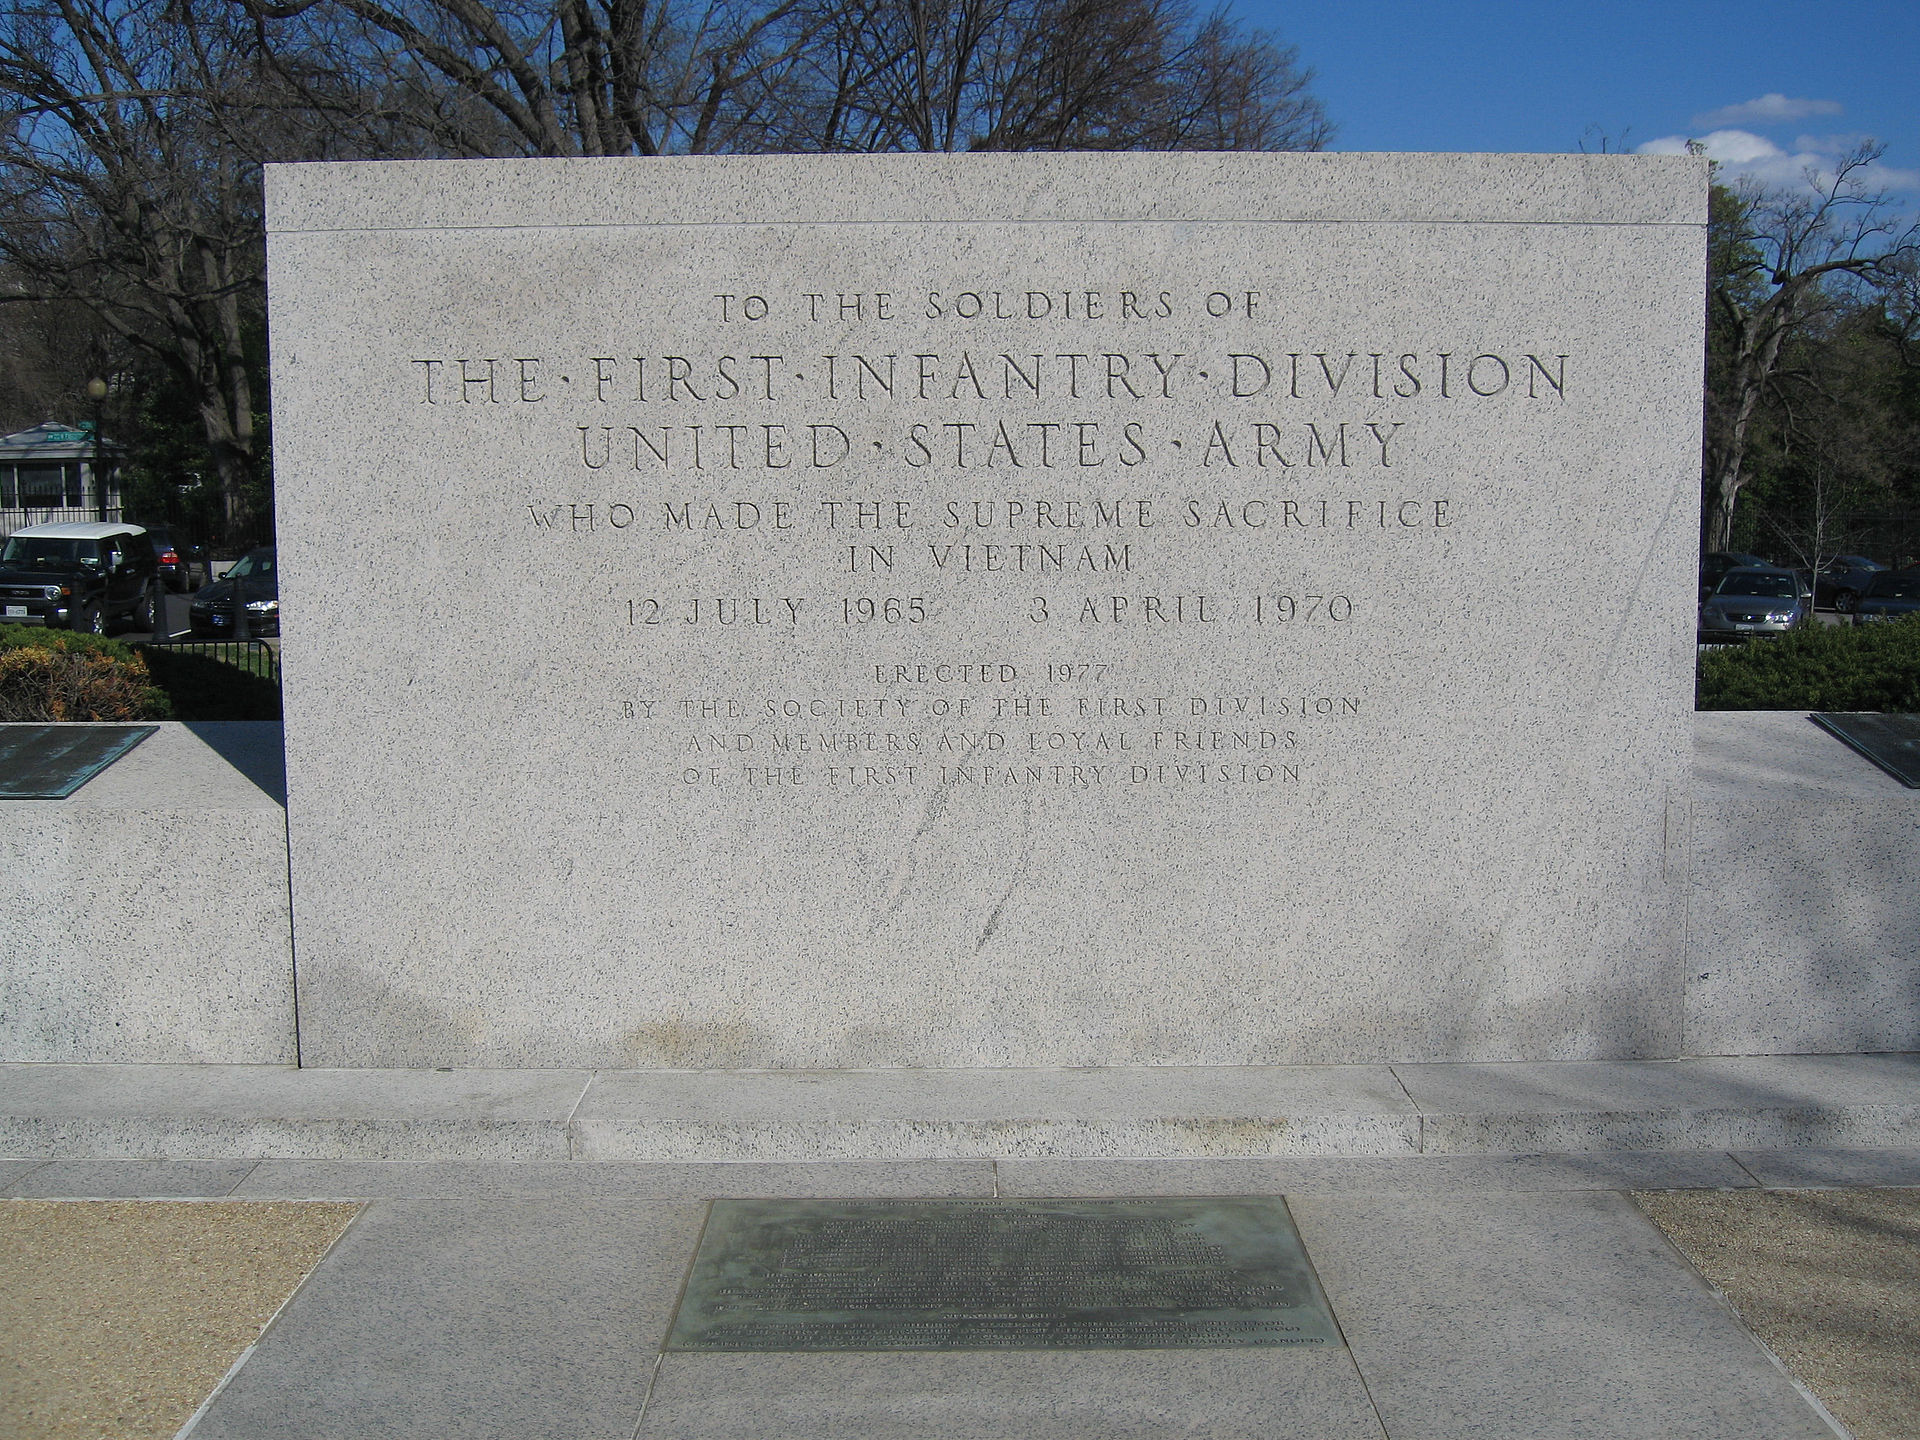 The east end of the First Division monument honoring First Division members who died in Vietnam. Photo by Leonard J. DeFrancisci, Wikimedia.